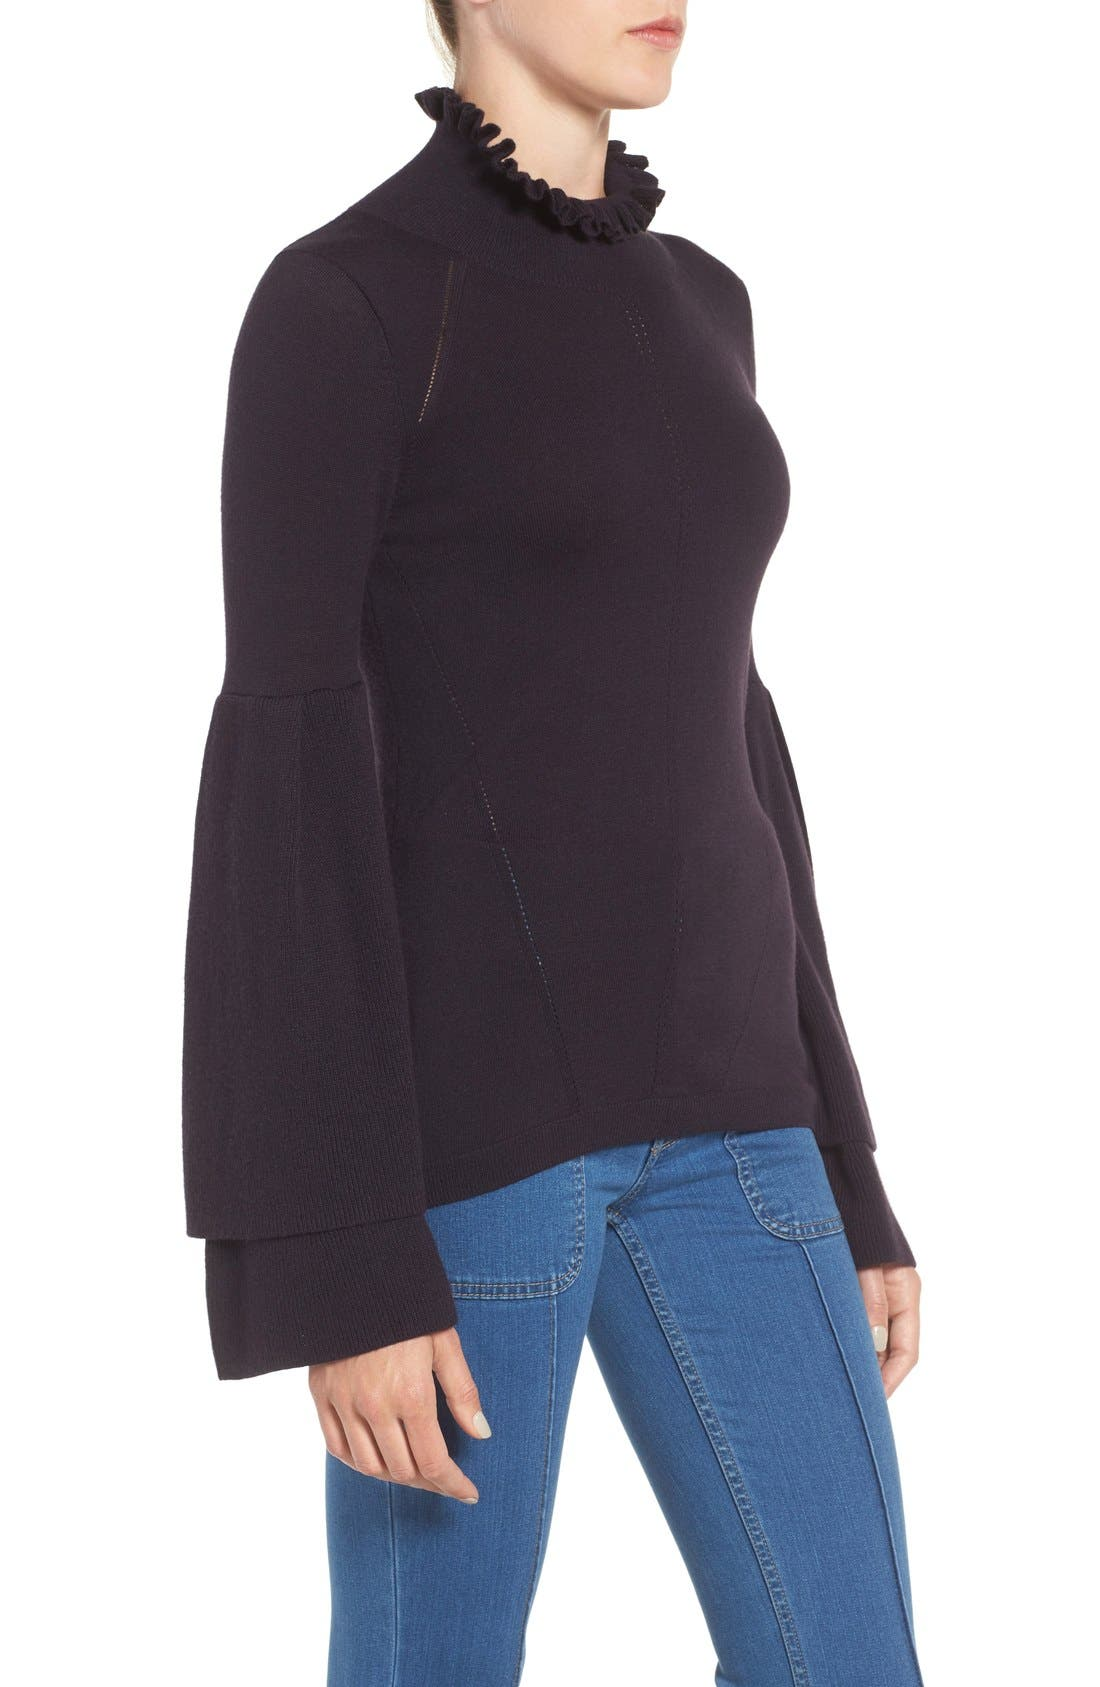 Olivia Palermo + Chelsea 28 Bell Sleeve Sweater,                             Alternate thumbnail 4, color,                             410